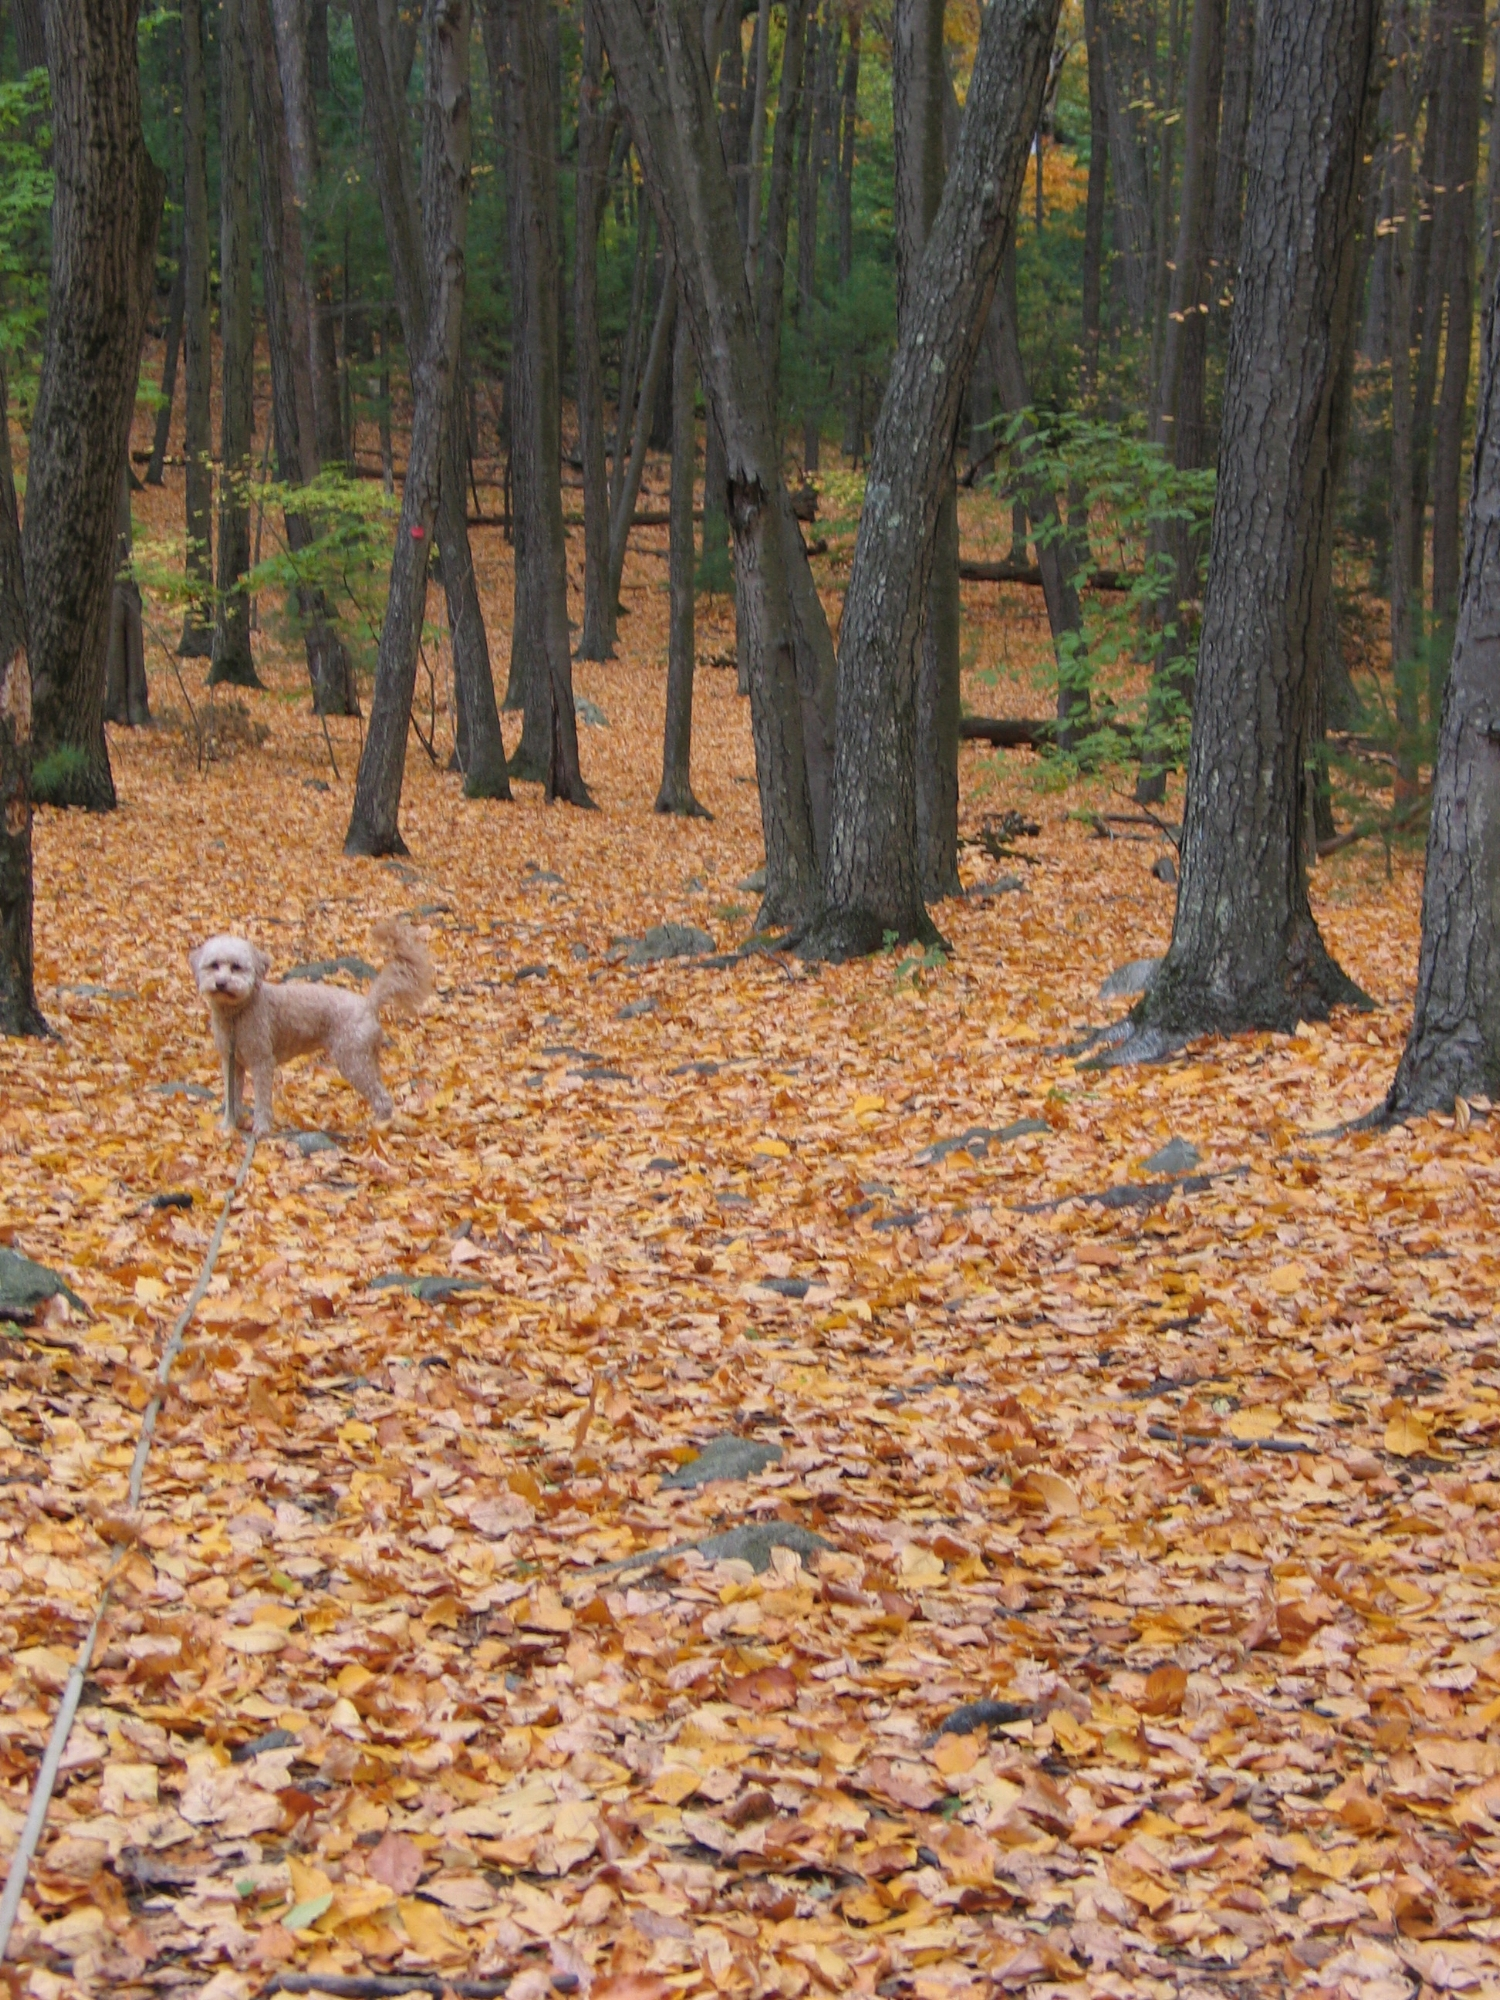 - People love to walk the woods -many with their dogs. They often become unofficial stewards of the trails: removing garbage, moving fallen branches, reporting any problems they see while walking. The woods are cleaner and safer due to these daily walkers.